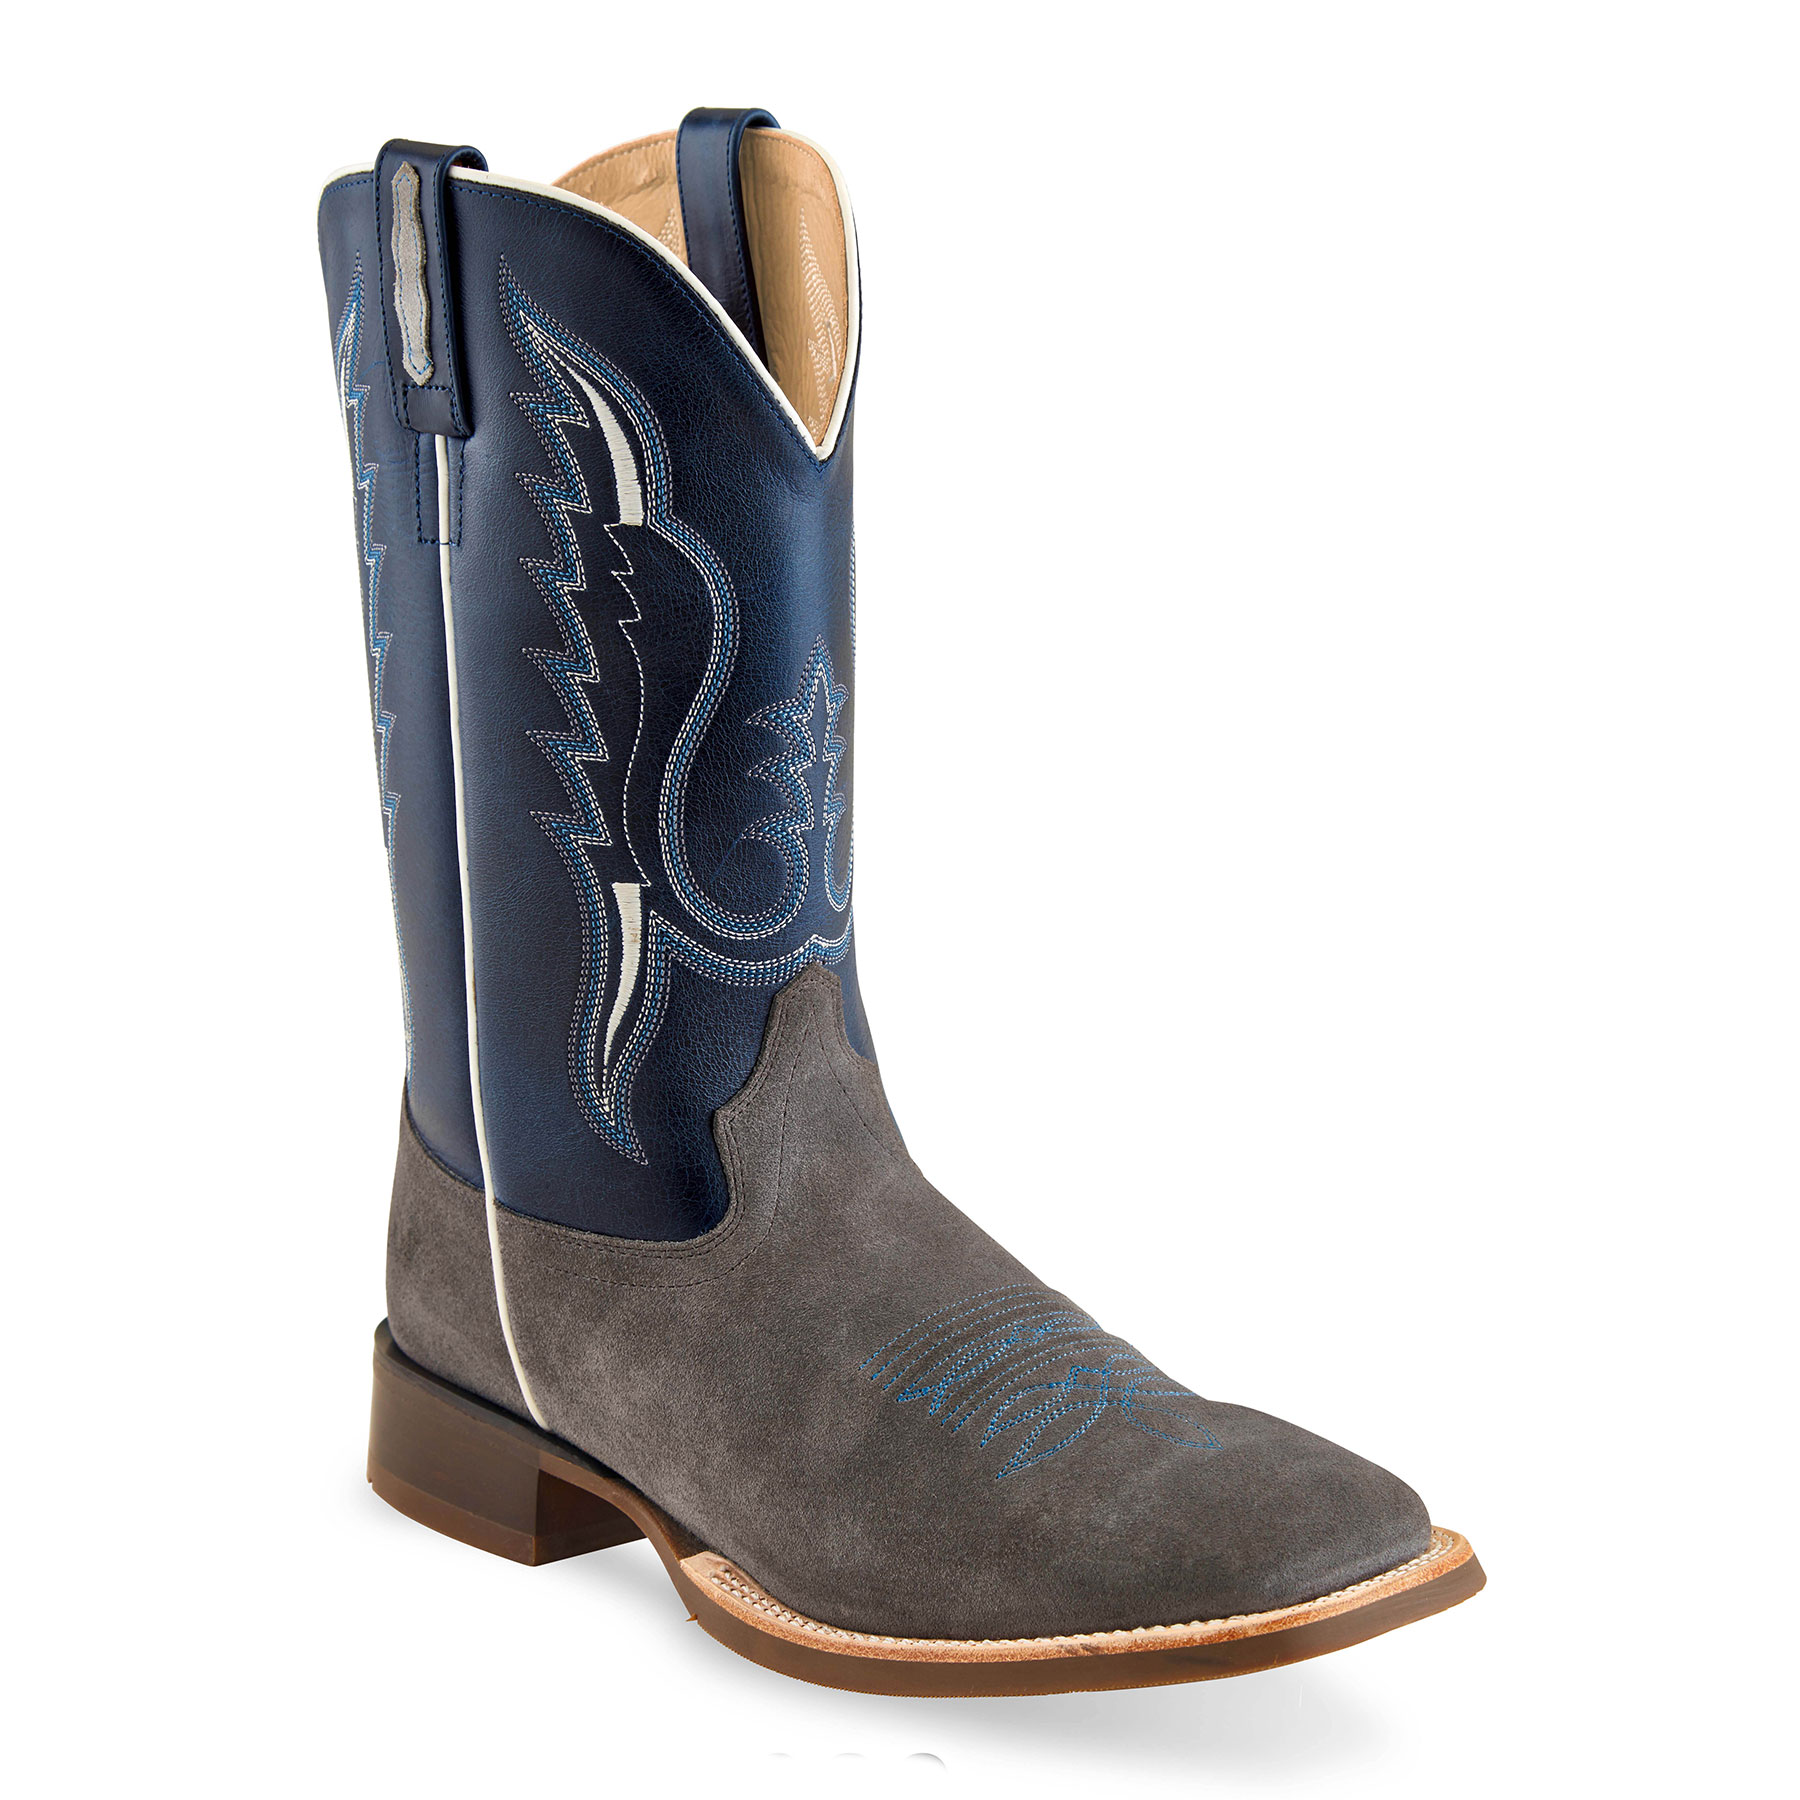 Old West Men's Broad Square Toe Boots